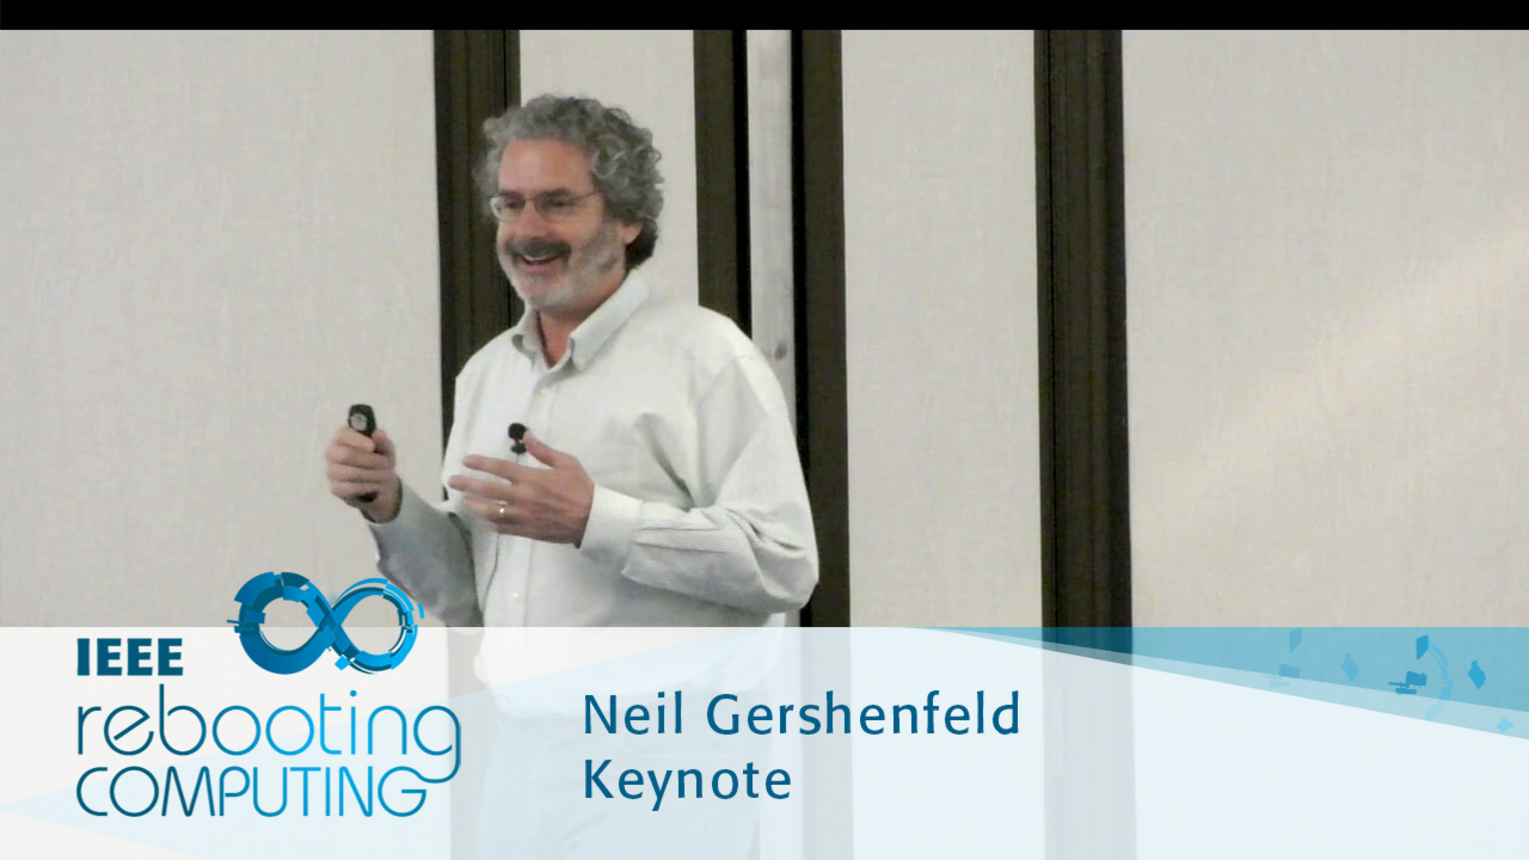 From Bits to Atoms - Neil Gershenfeld: 2016 International Conference on Rebooting Computing